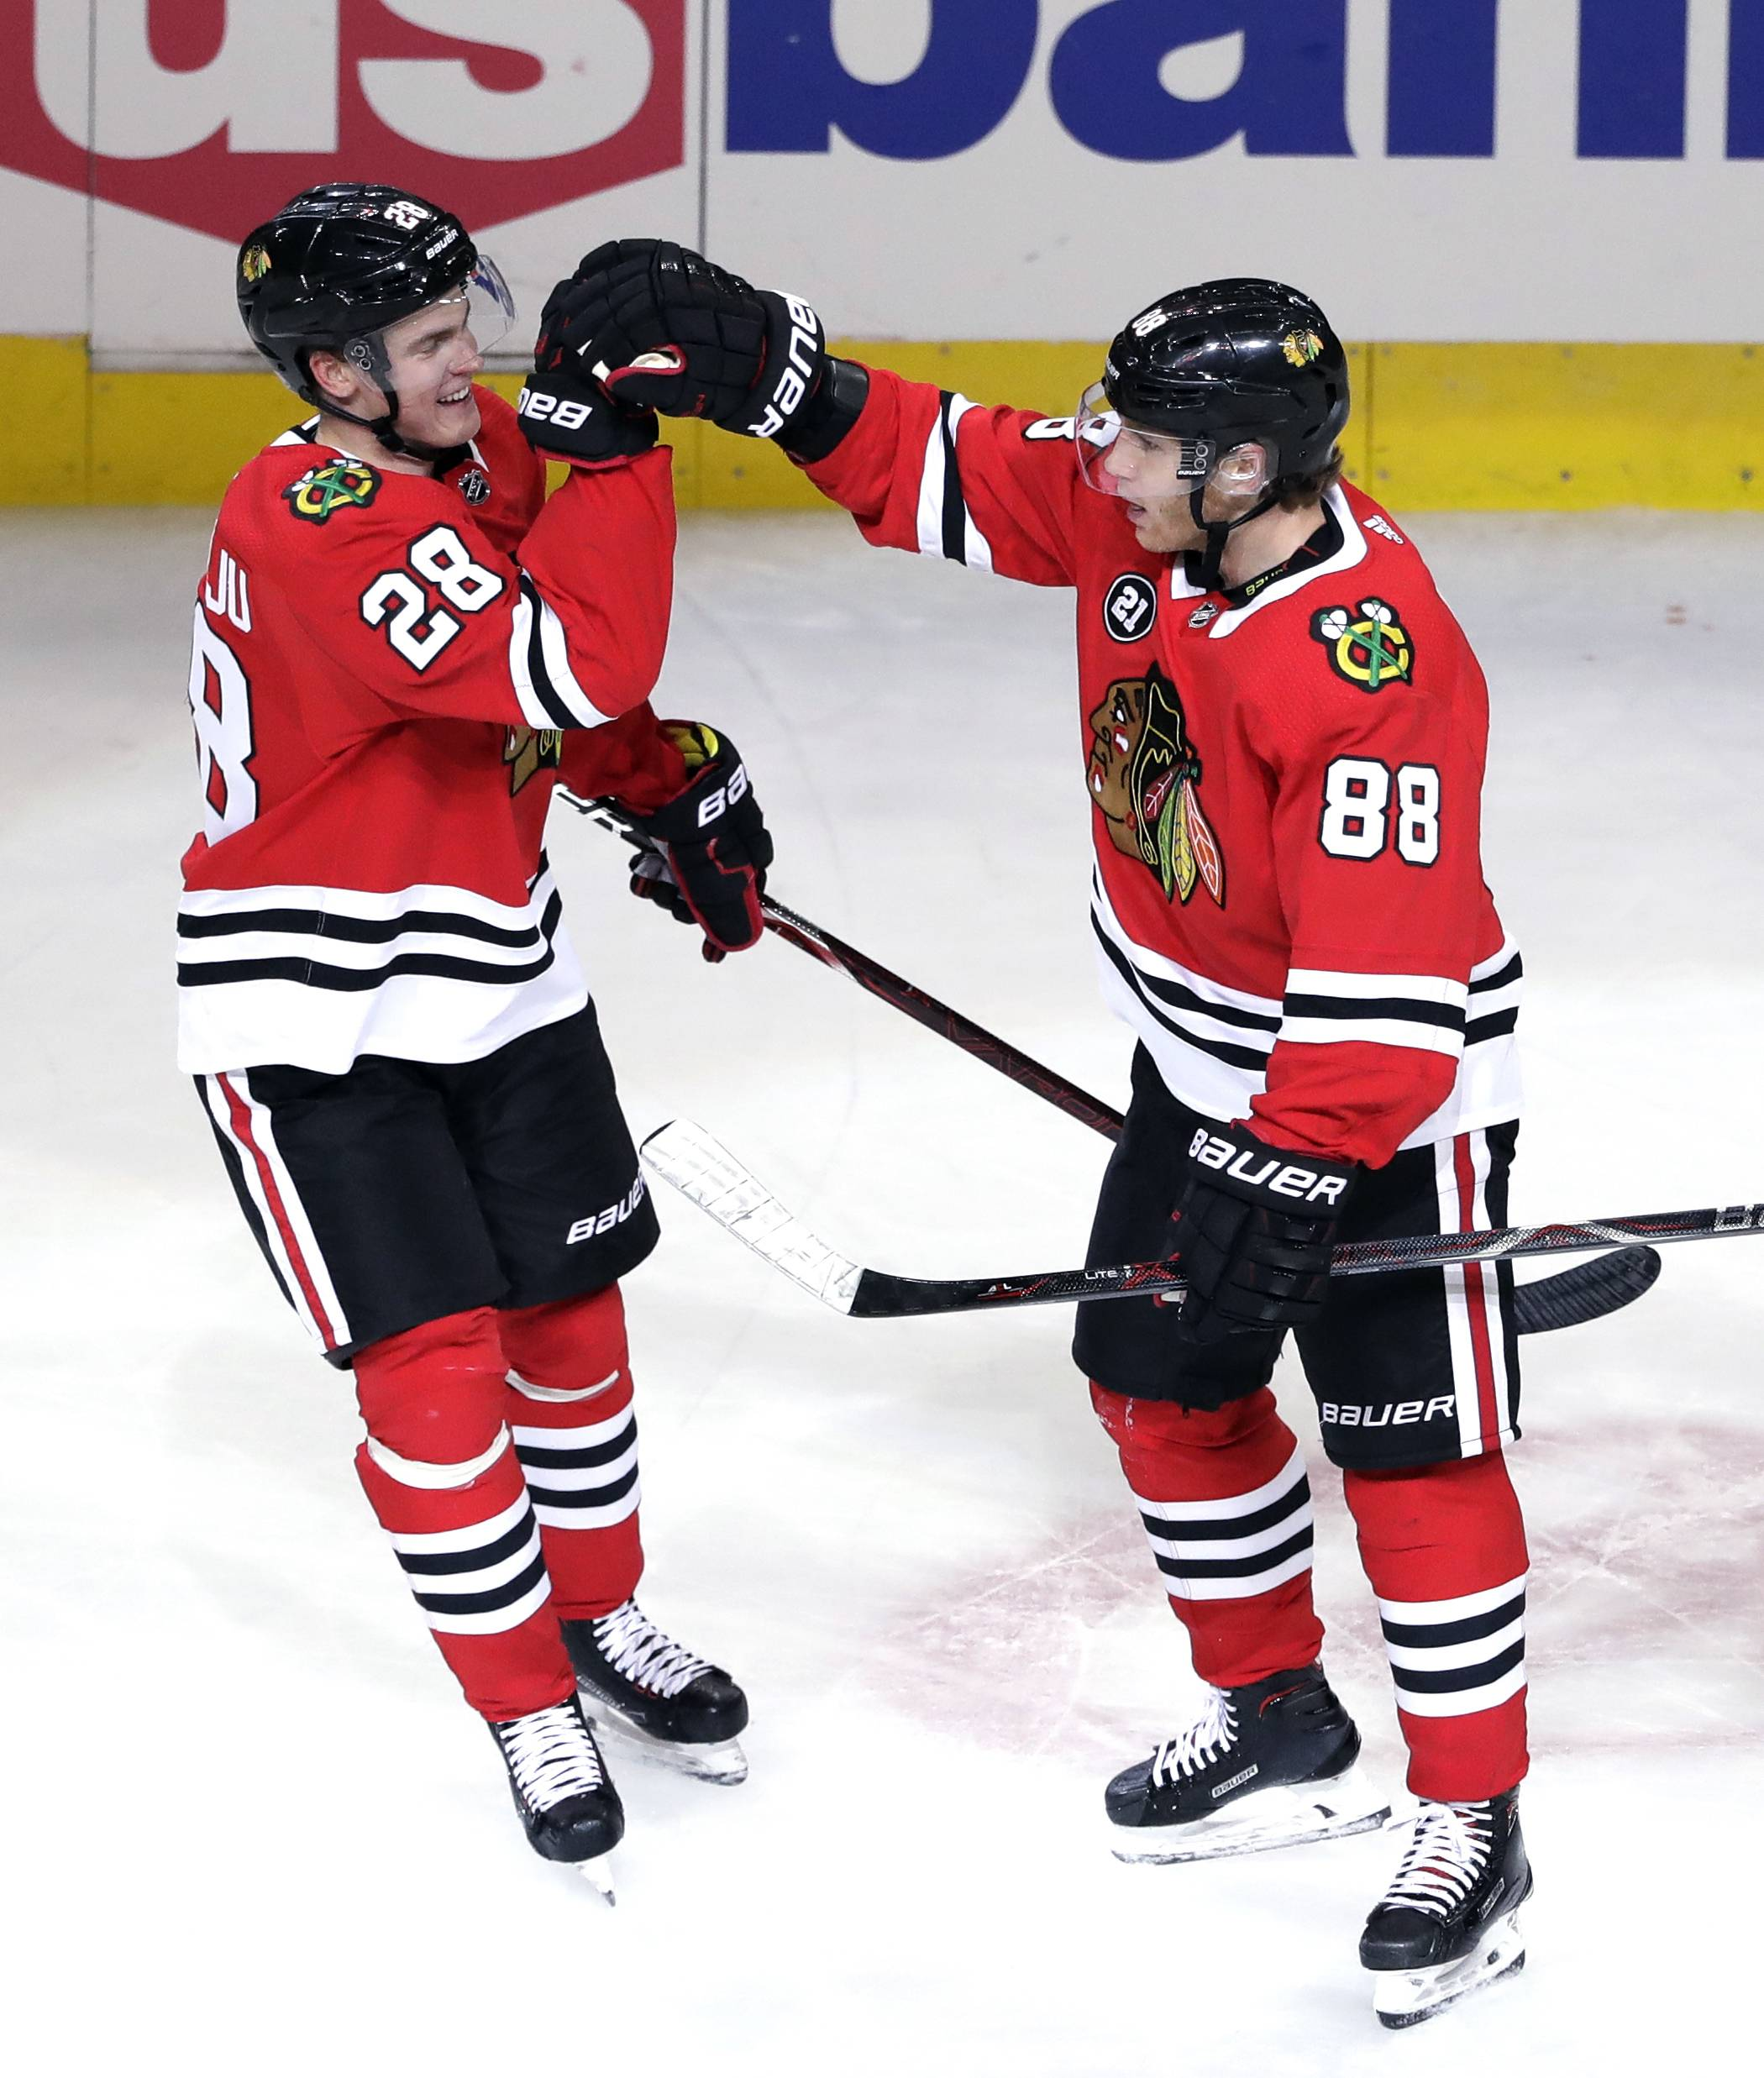 Chicago Blackhawks right wing Patrick Kane, right, celebrates with defenseman Henri Jokiharju after scoring his goal during the first period of an NHL hockey game against the St. Louis Blues, Saturday, Oct. 13, 2018, in Chicago.